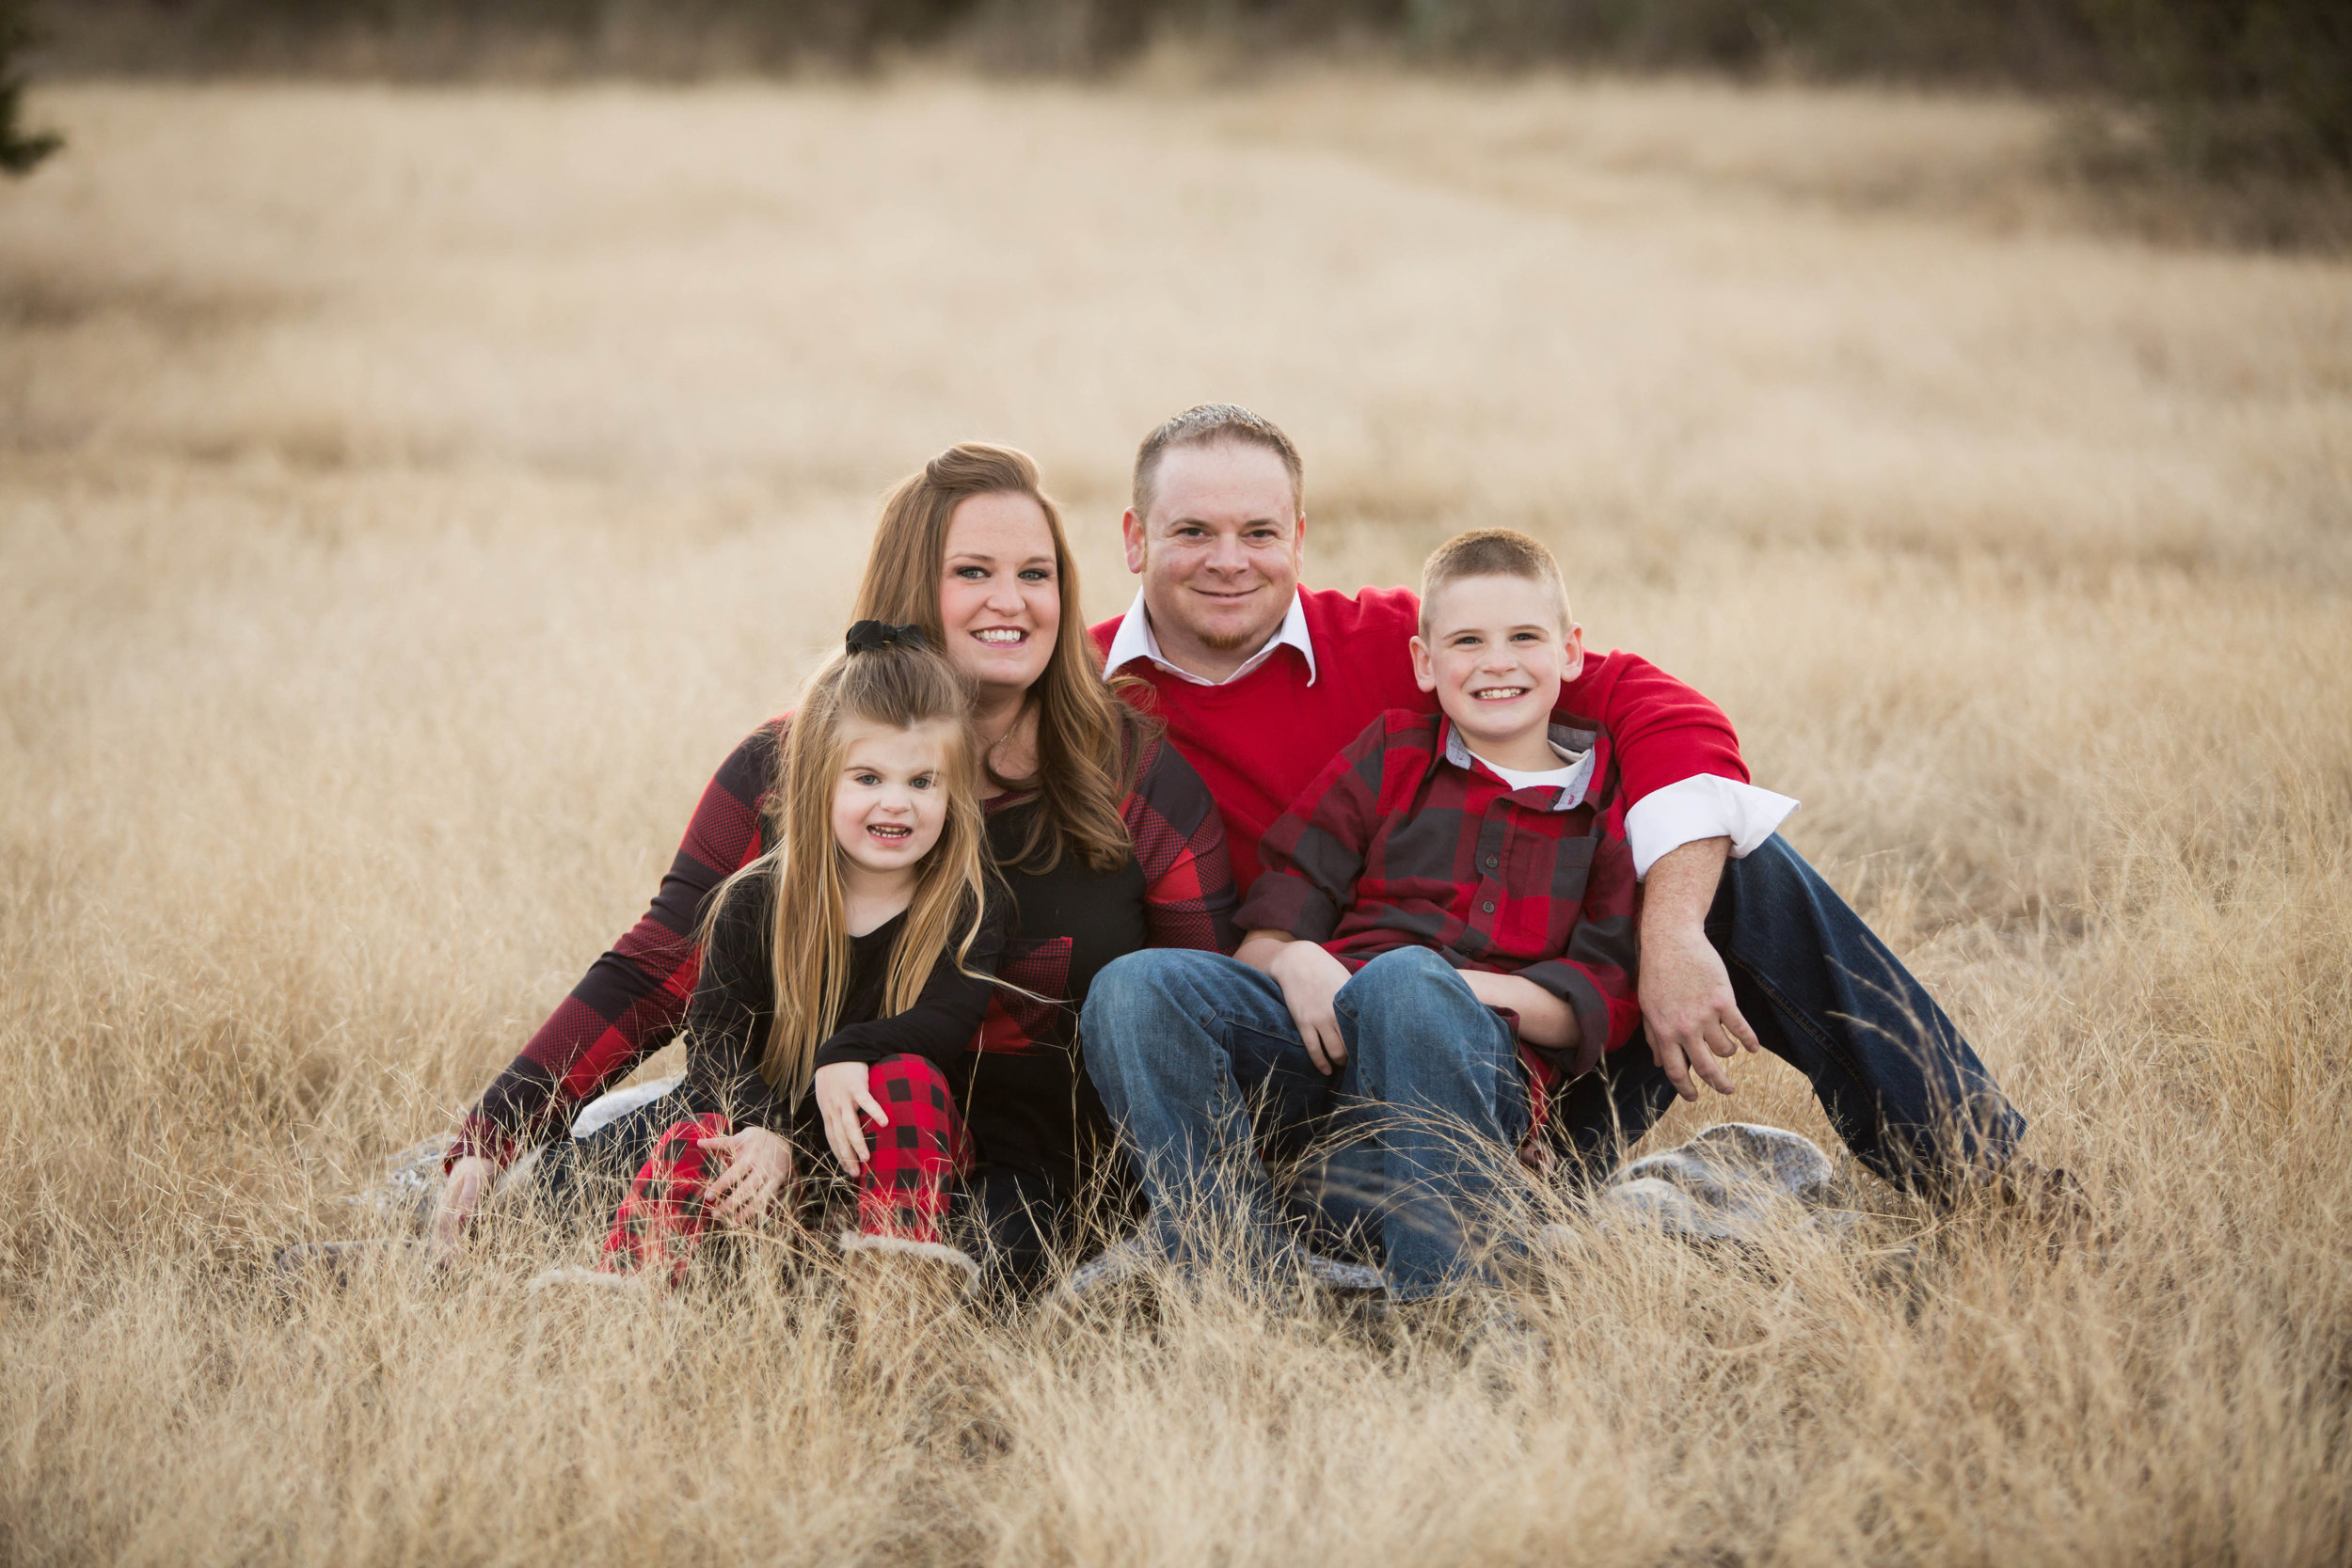 Marble_Falls_Sternad_Family_Photographer_Jenna_Petty_09.jpg